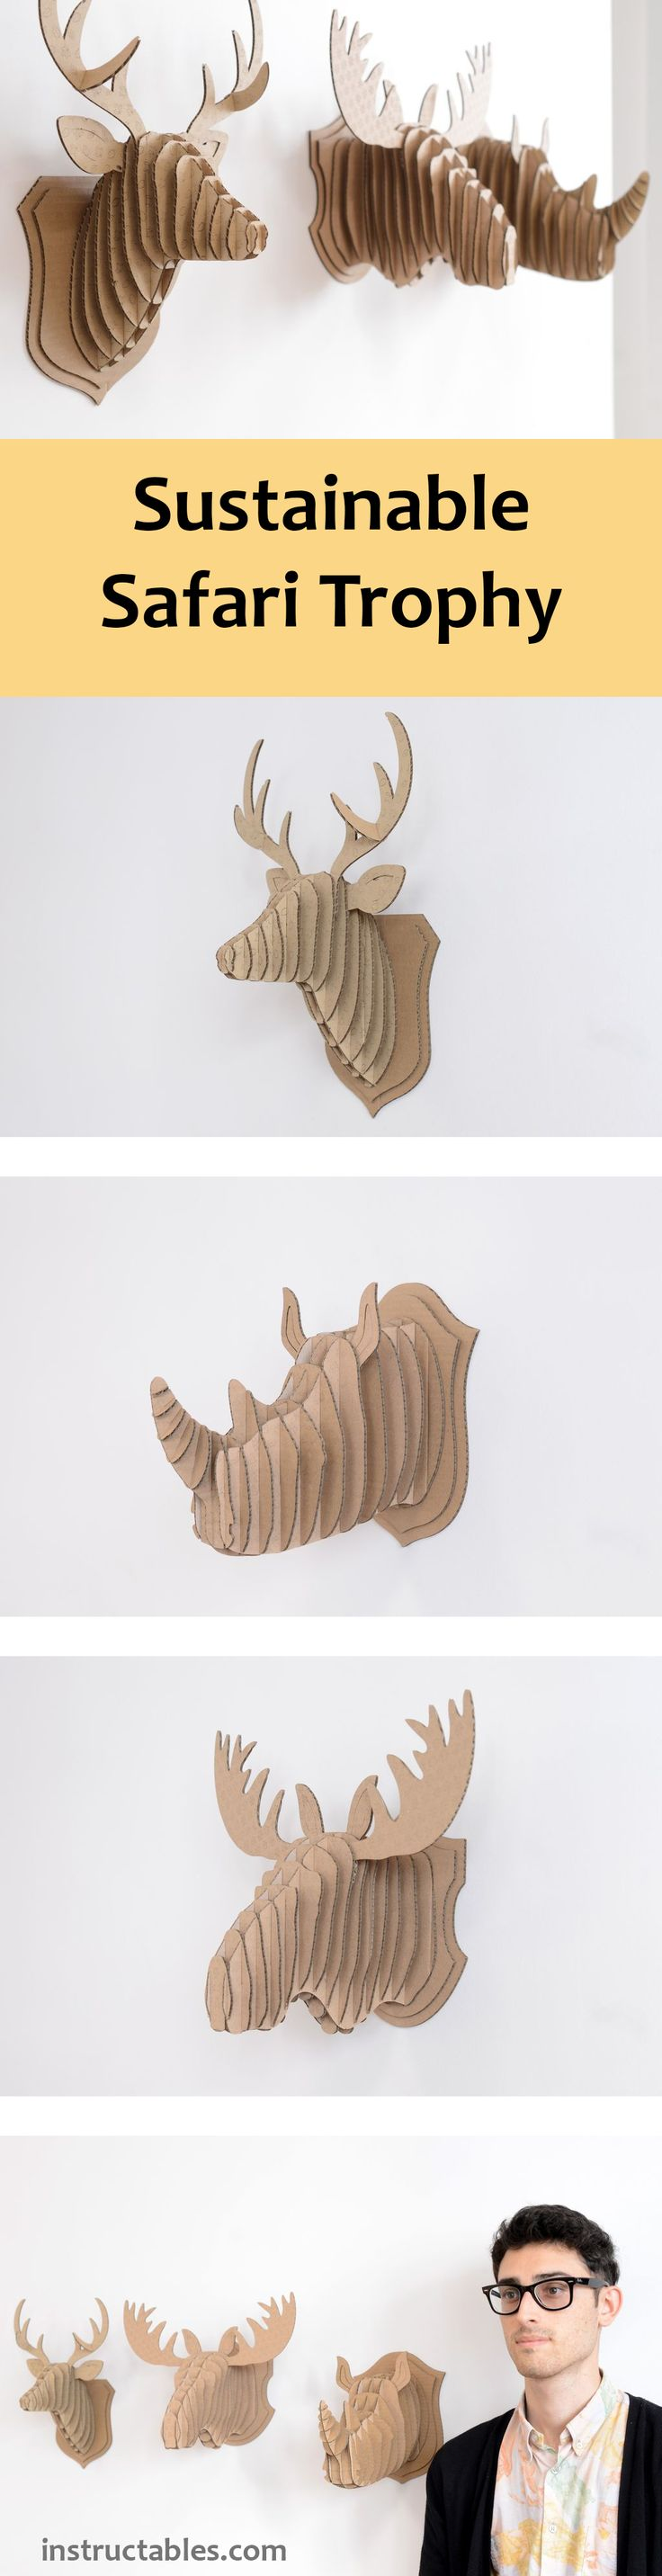 Laser cut cardboard makes these a snap to make, but you can also cut them with an X-acto.